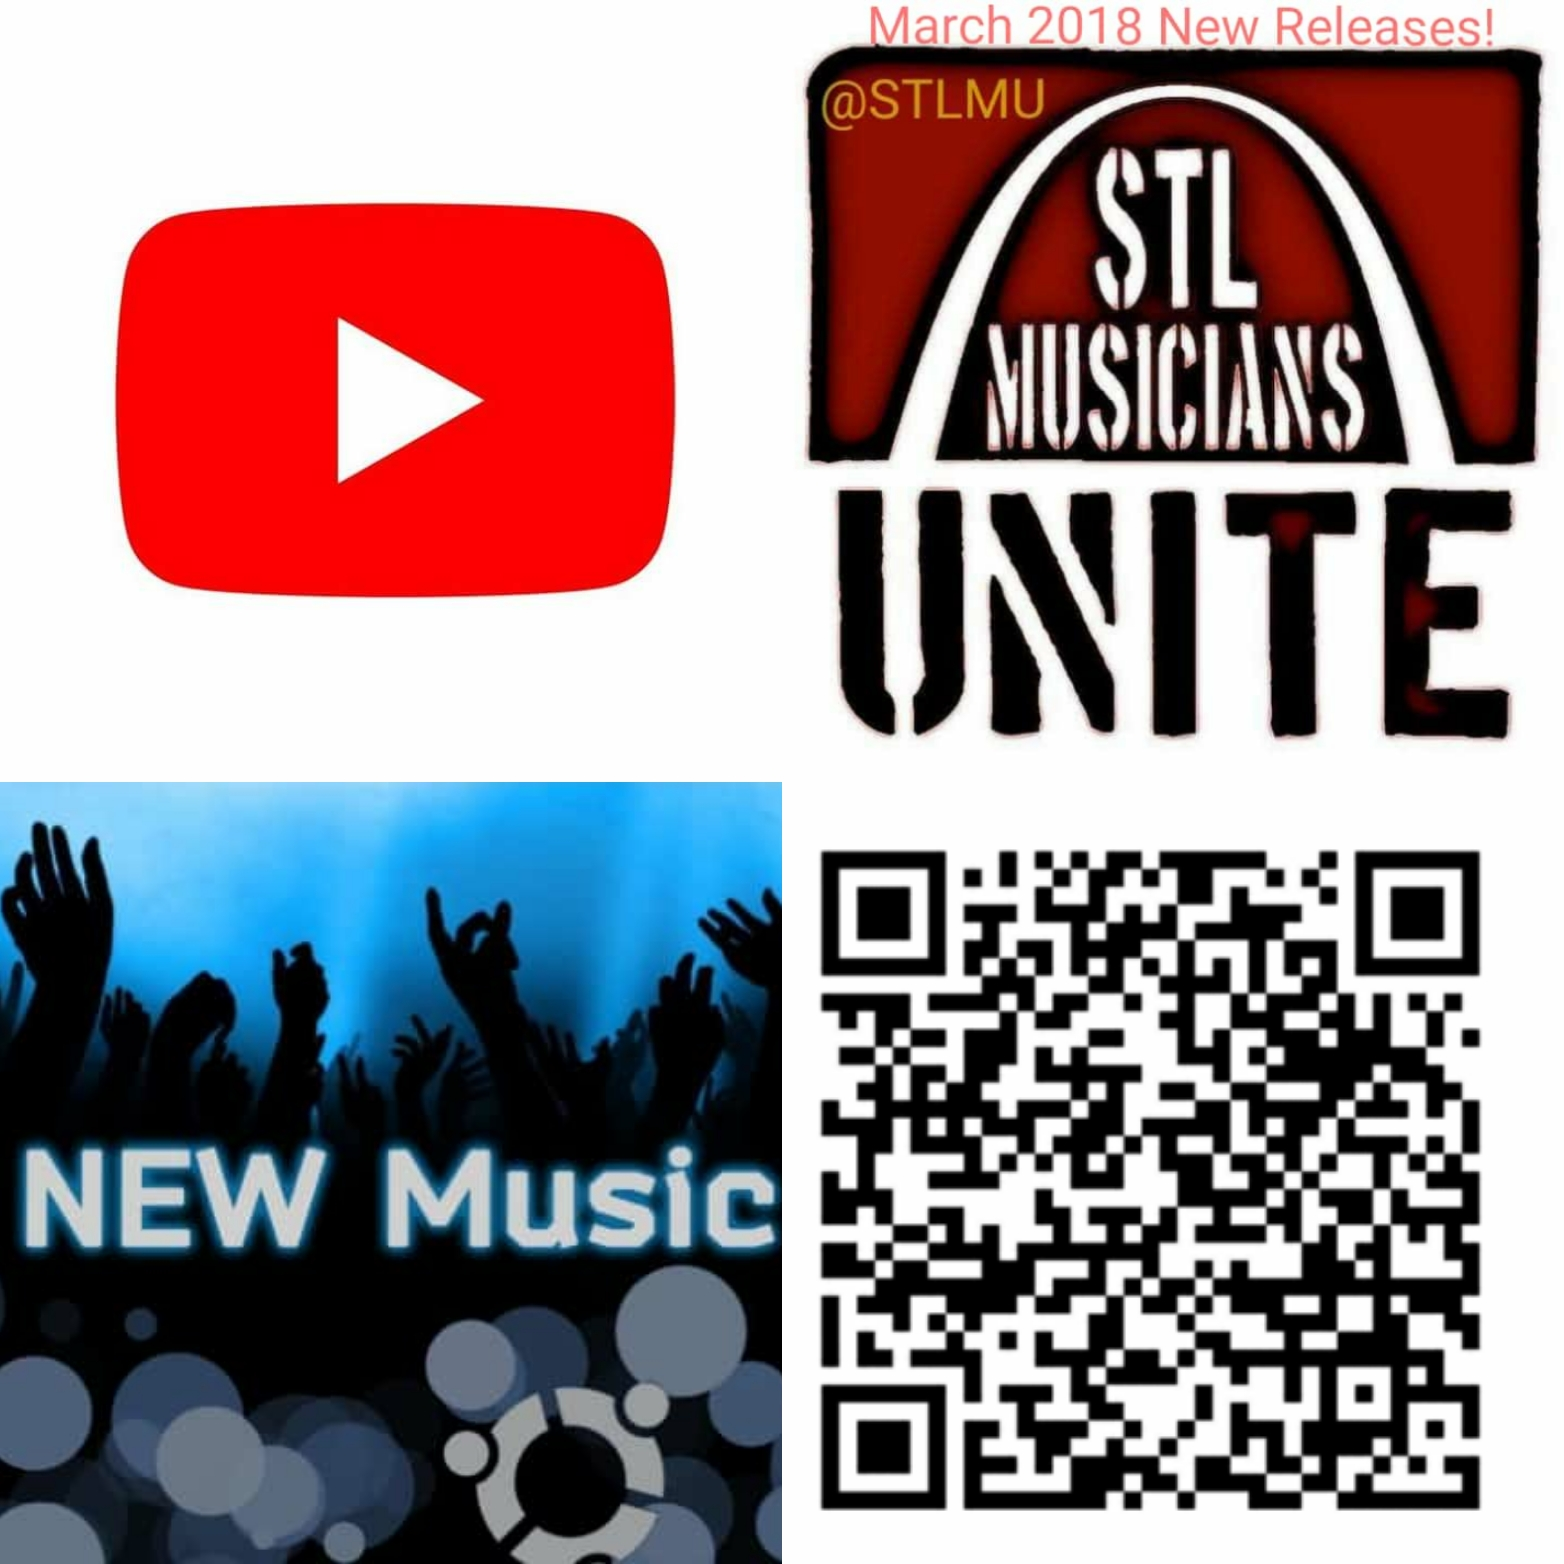 7839625ec6582 March 2018 YouTube and artist new releases are listed in alphabetical  order. Physical copies of particular releases are now available through the  artist and ...